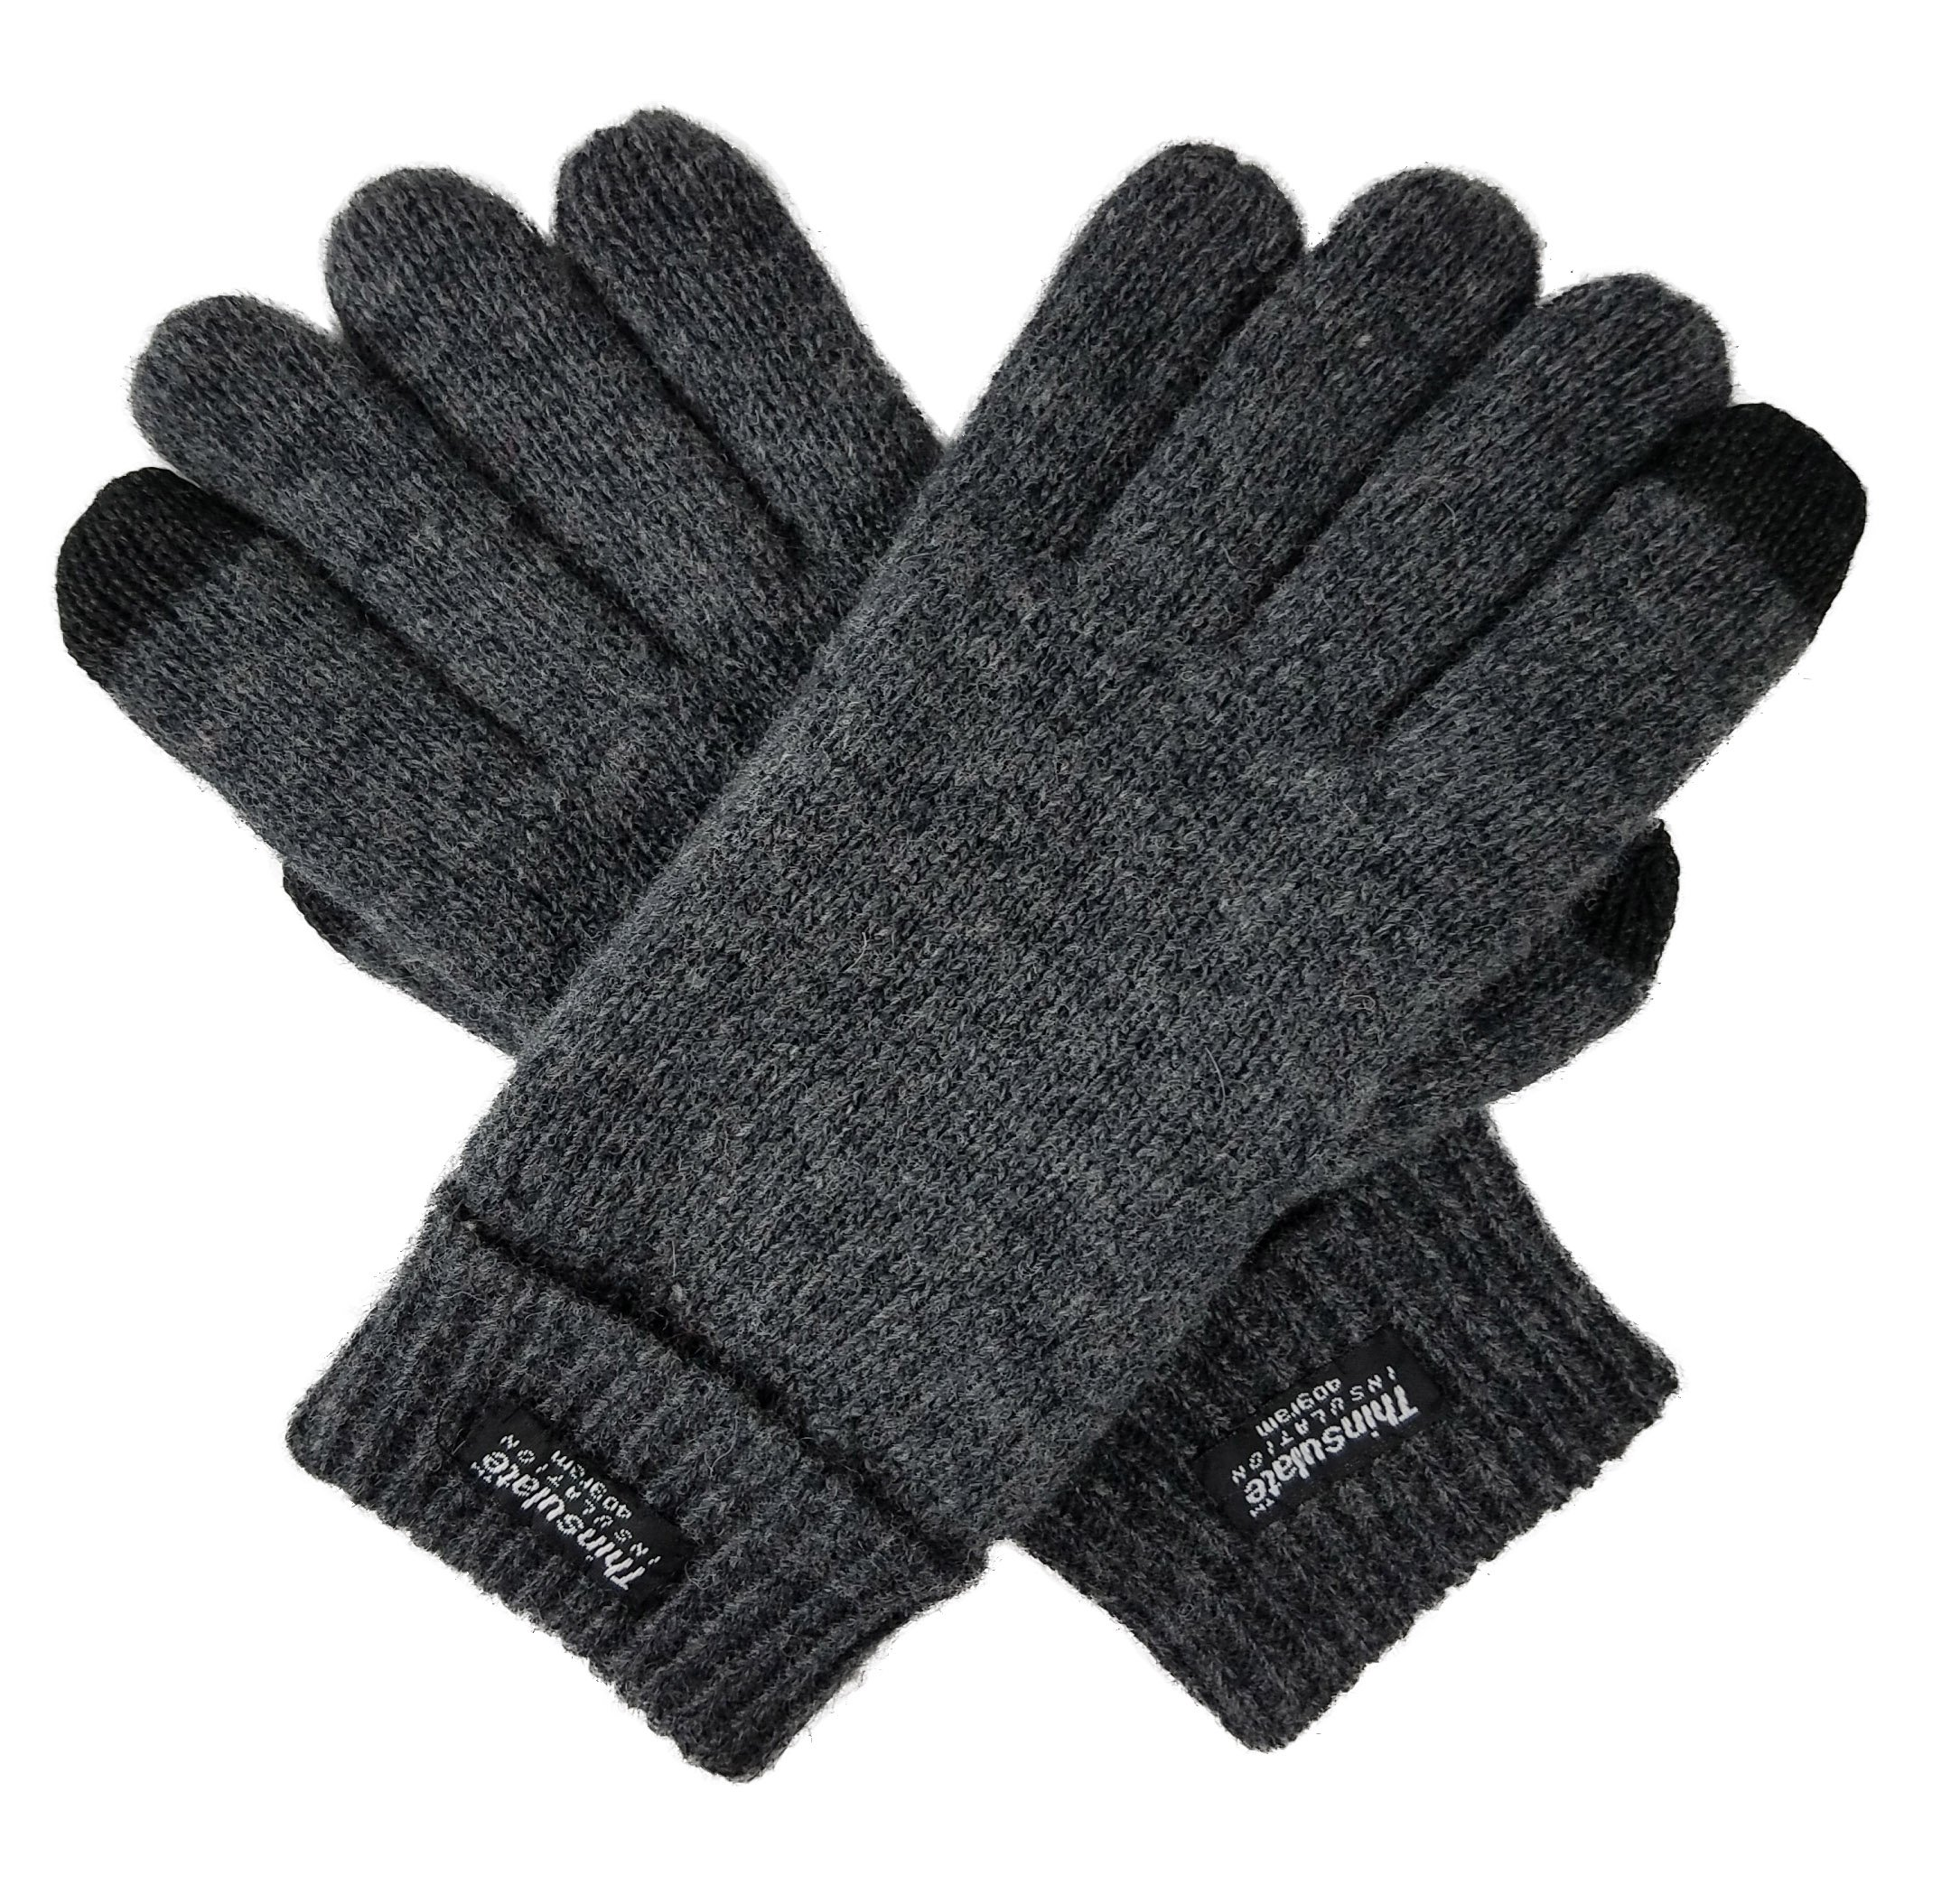 Bruceriver Ladie's Wool Knit Gloves with Thinsulate Lining Size L (Anthra Touchscreen) by BRUCERIVER